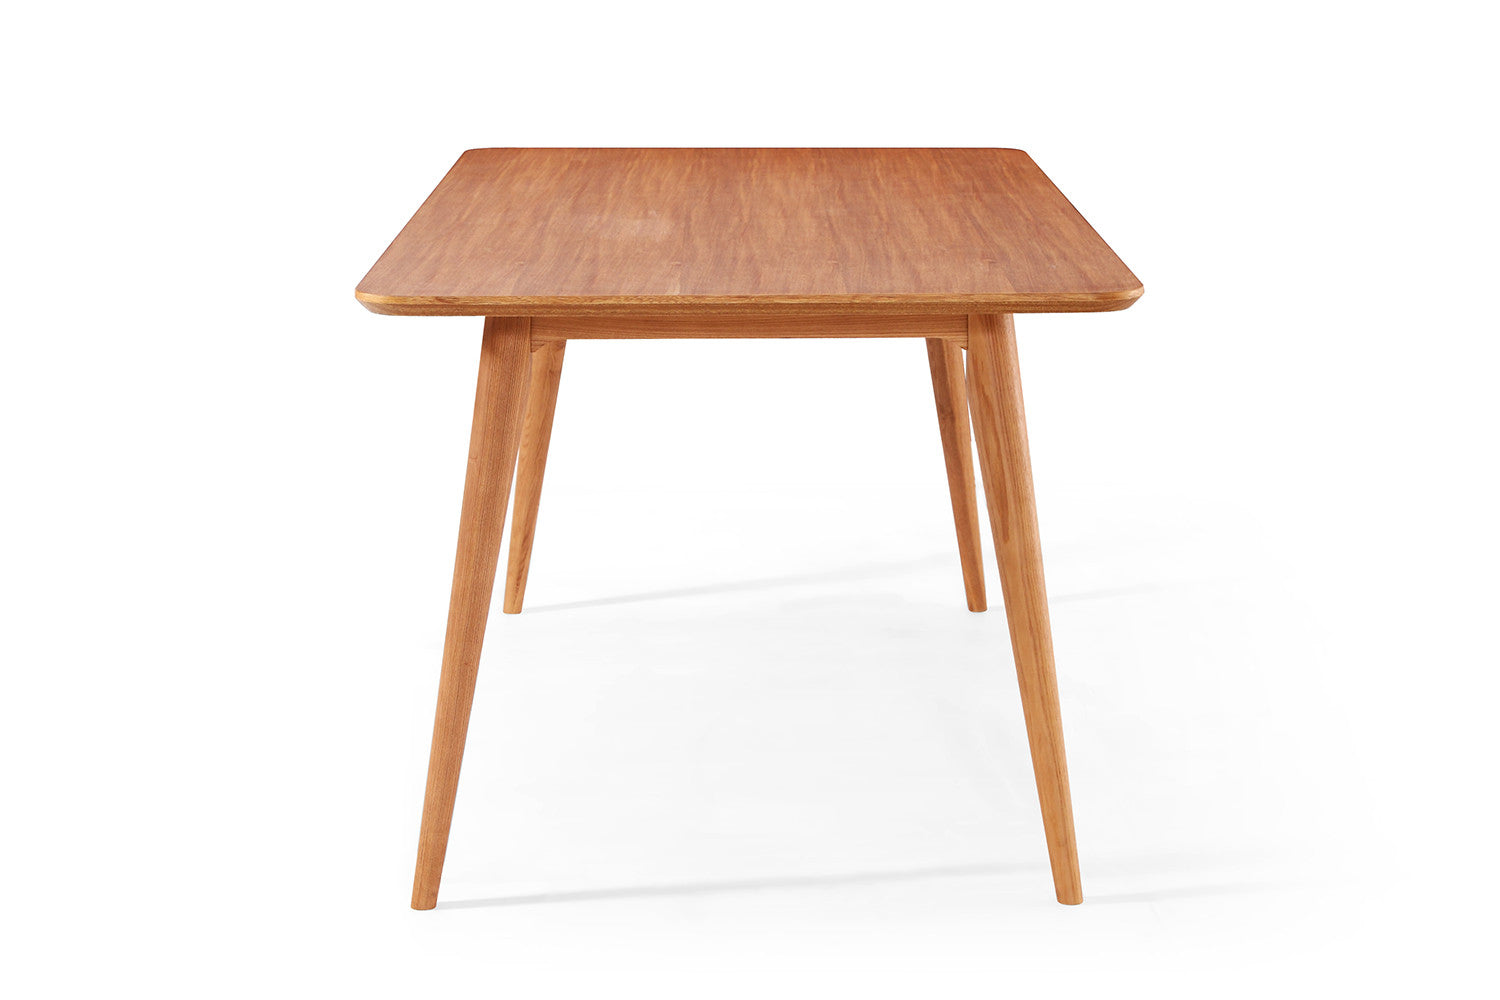 Table de salle manger design en bois julia dewarens for Table salle a manger alinea